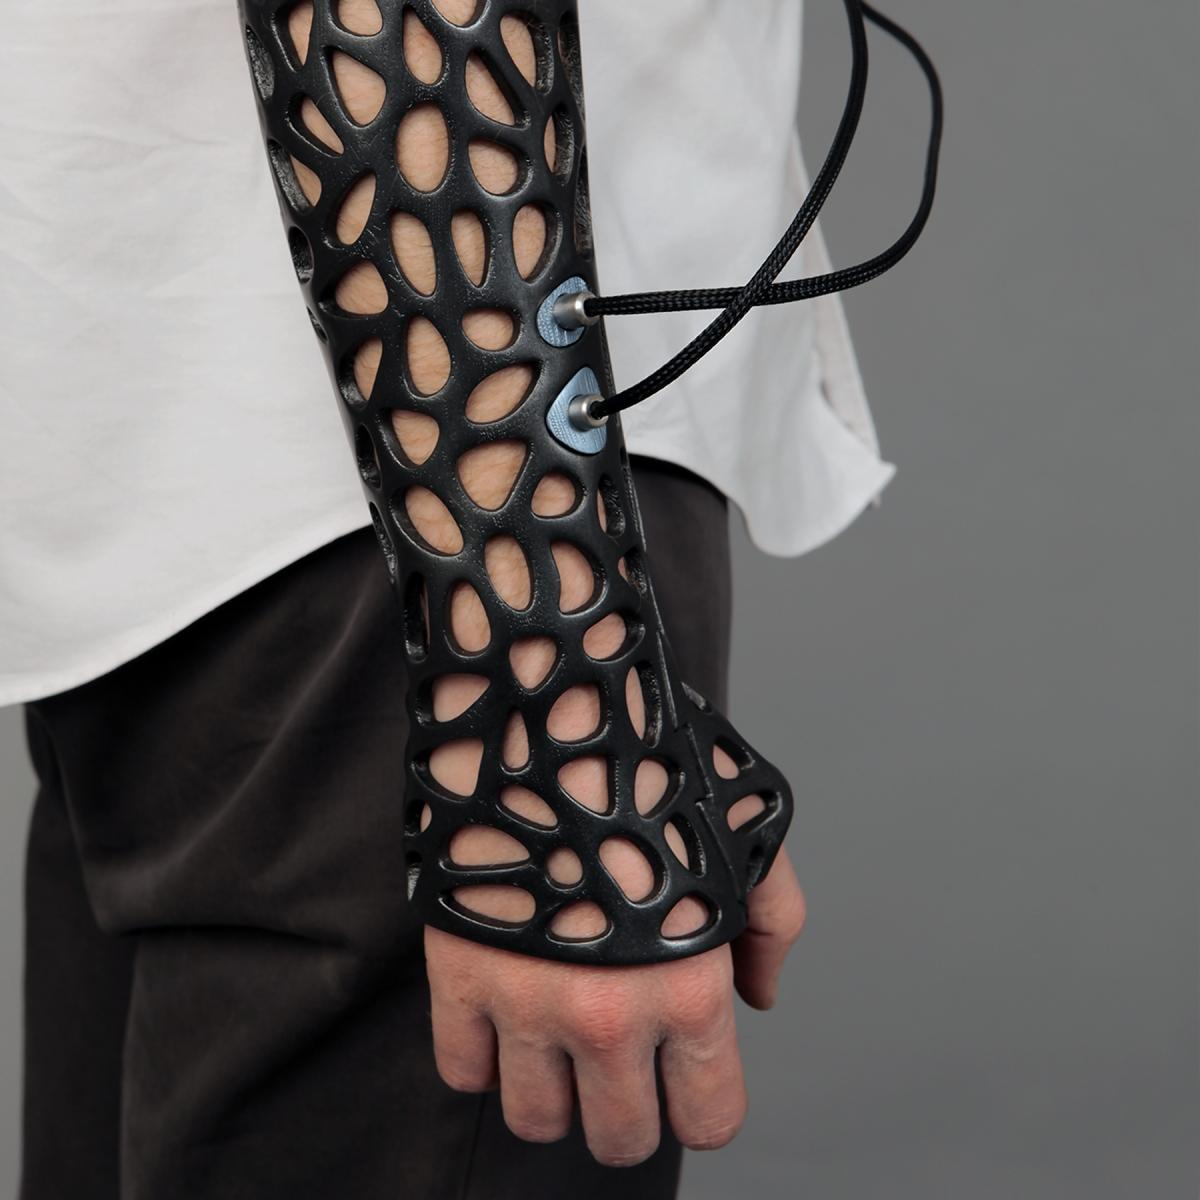 3D Printed Plastic Cast Speeds Bone Recovery Using Ultrasound